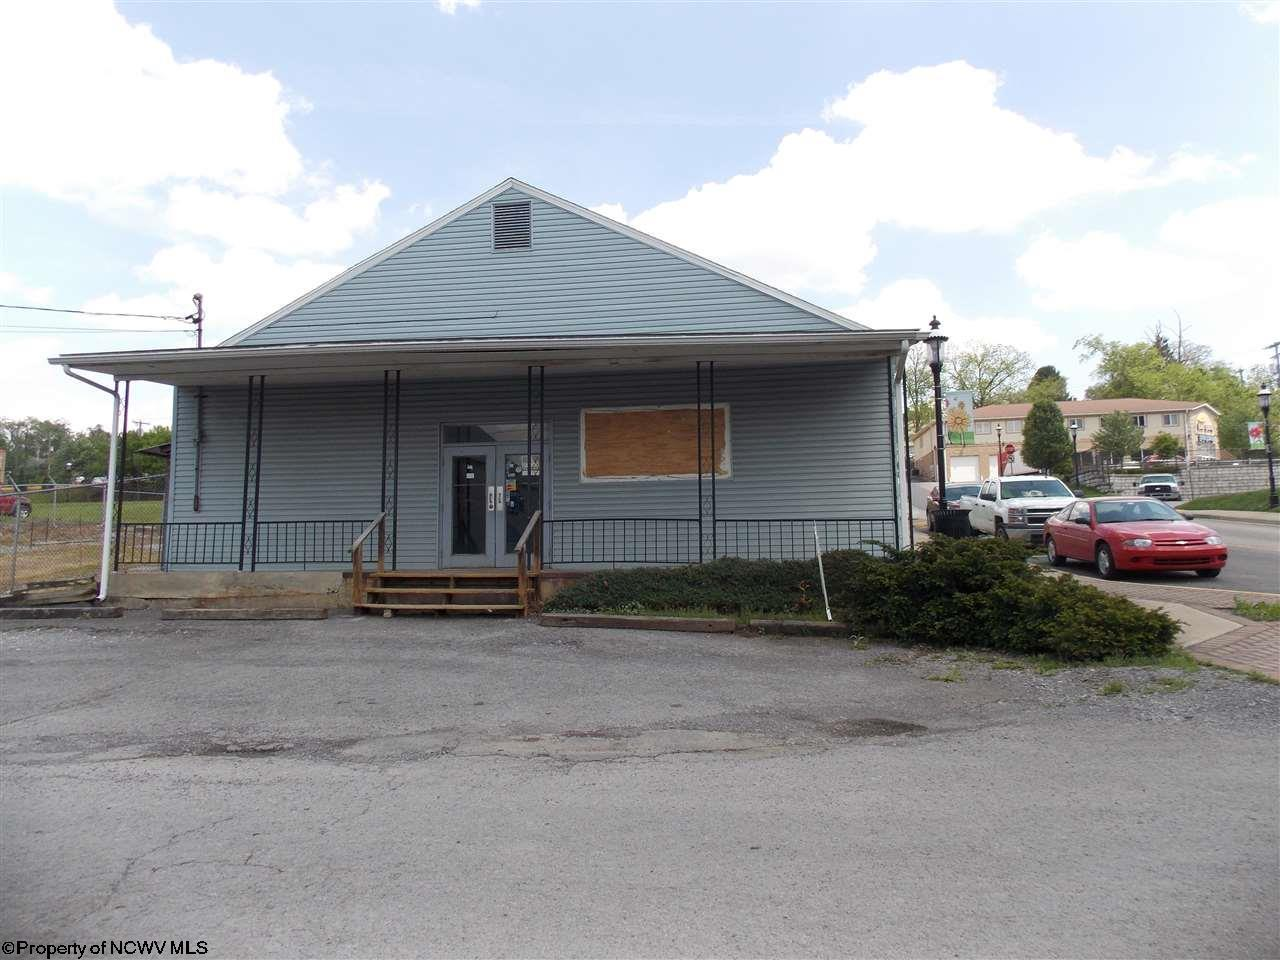 360 Industrial Avenue,